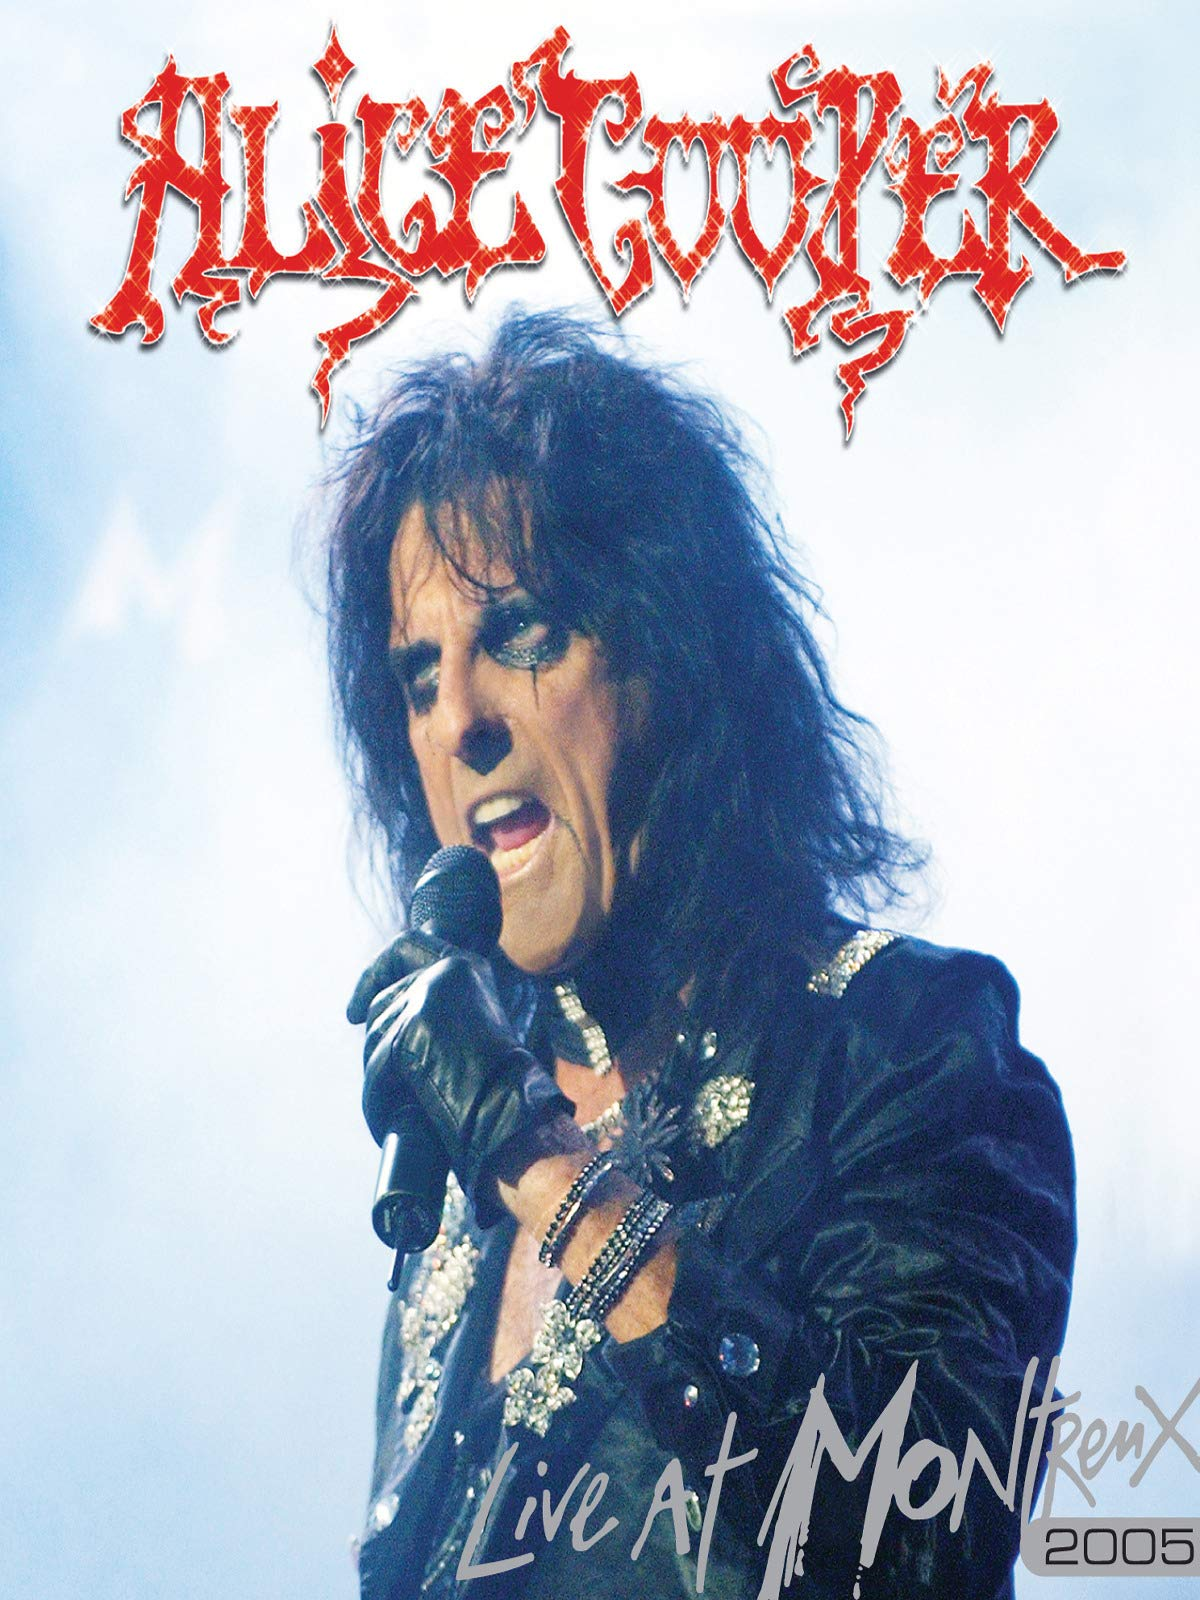 Alice Cooper Live At Montreux 2005 on Amazon Prime Video UK